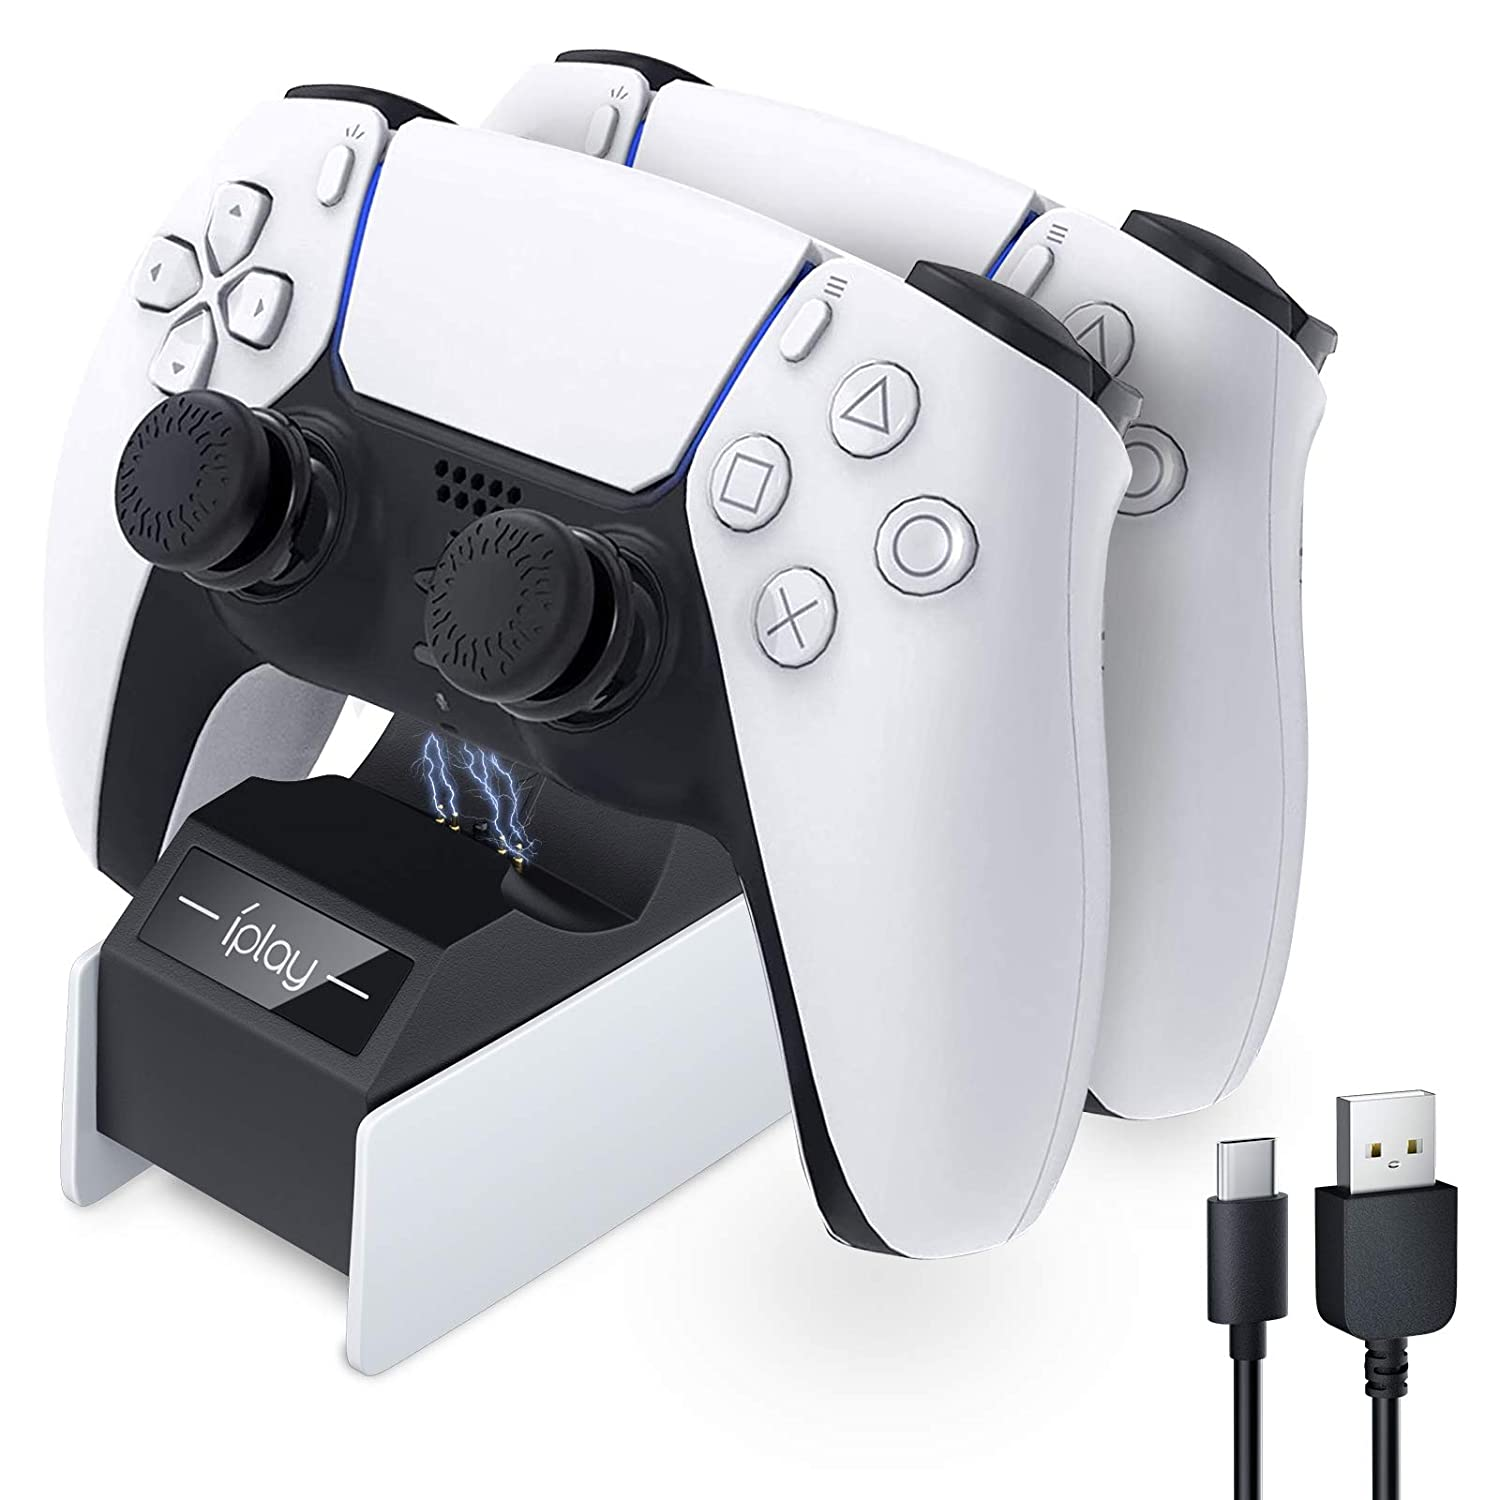 PS5 Choice Controller Charger HONEYWHALE 5 Charg Cash special price Playstation